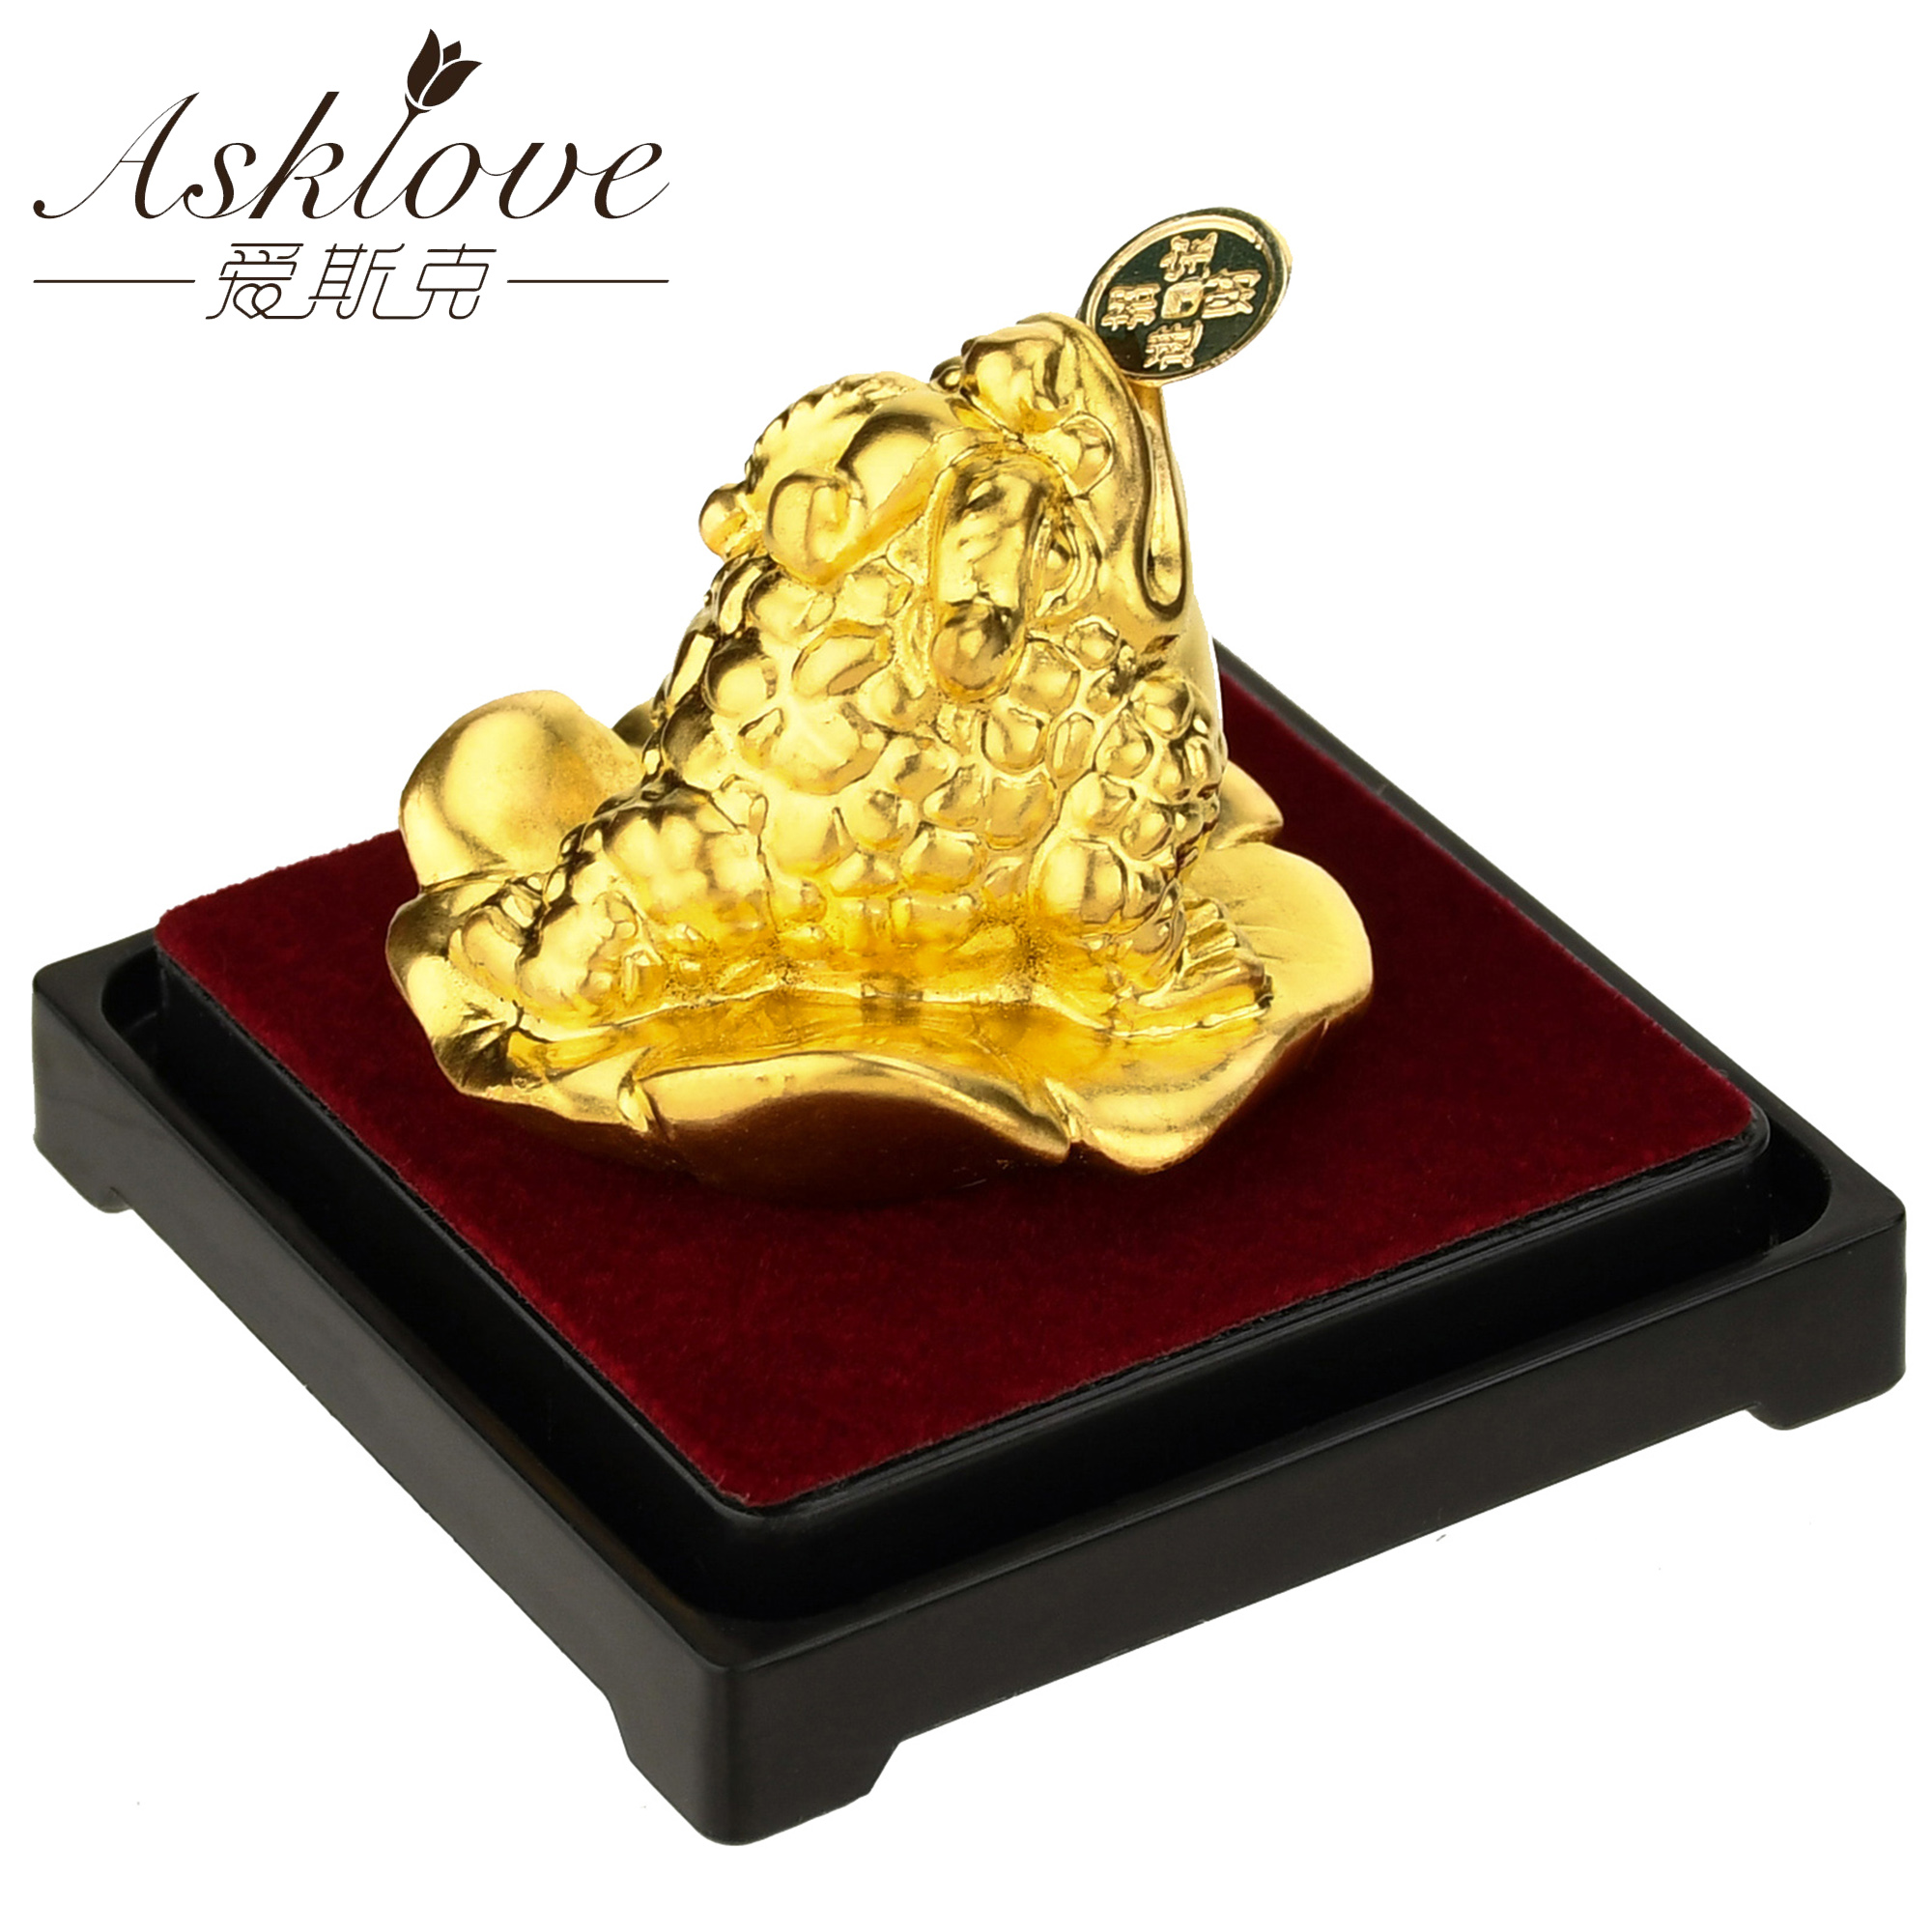 FengShui Toad Decoration Crafts Money Fortune Wealth Chinese Gold Frog Toad Coin Desktop Ornaments Lucky Gift Office Home Decor(China)